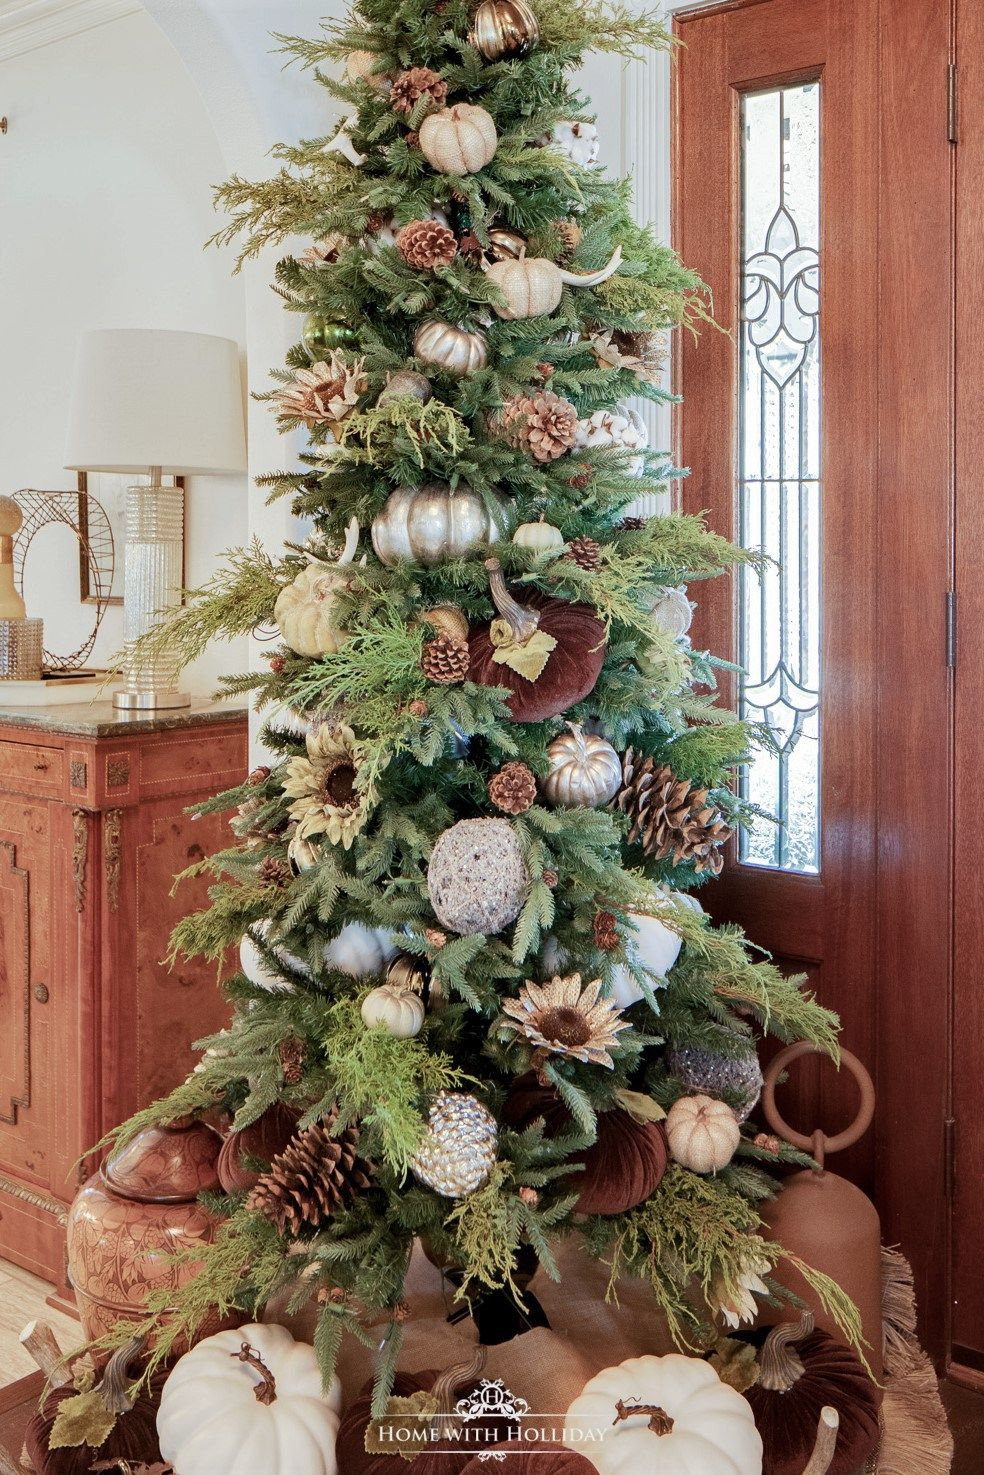 My Simple Thanksgiving Tree With Pumpkins And Pinecones Home With Holliday Christmas Tree Decorations Thanksgiving Tree Fall Christmas Tree